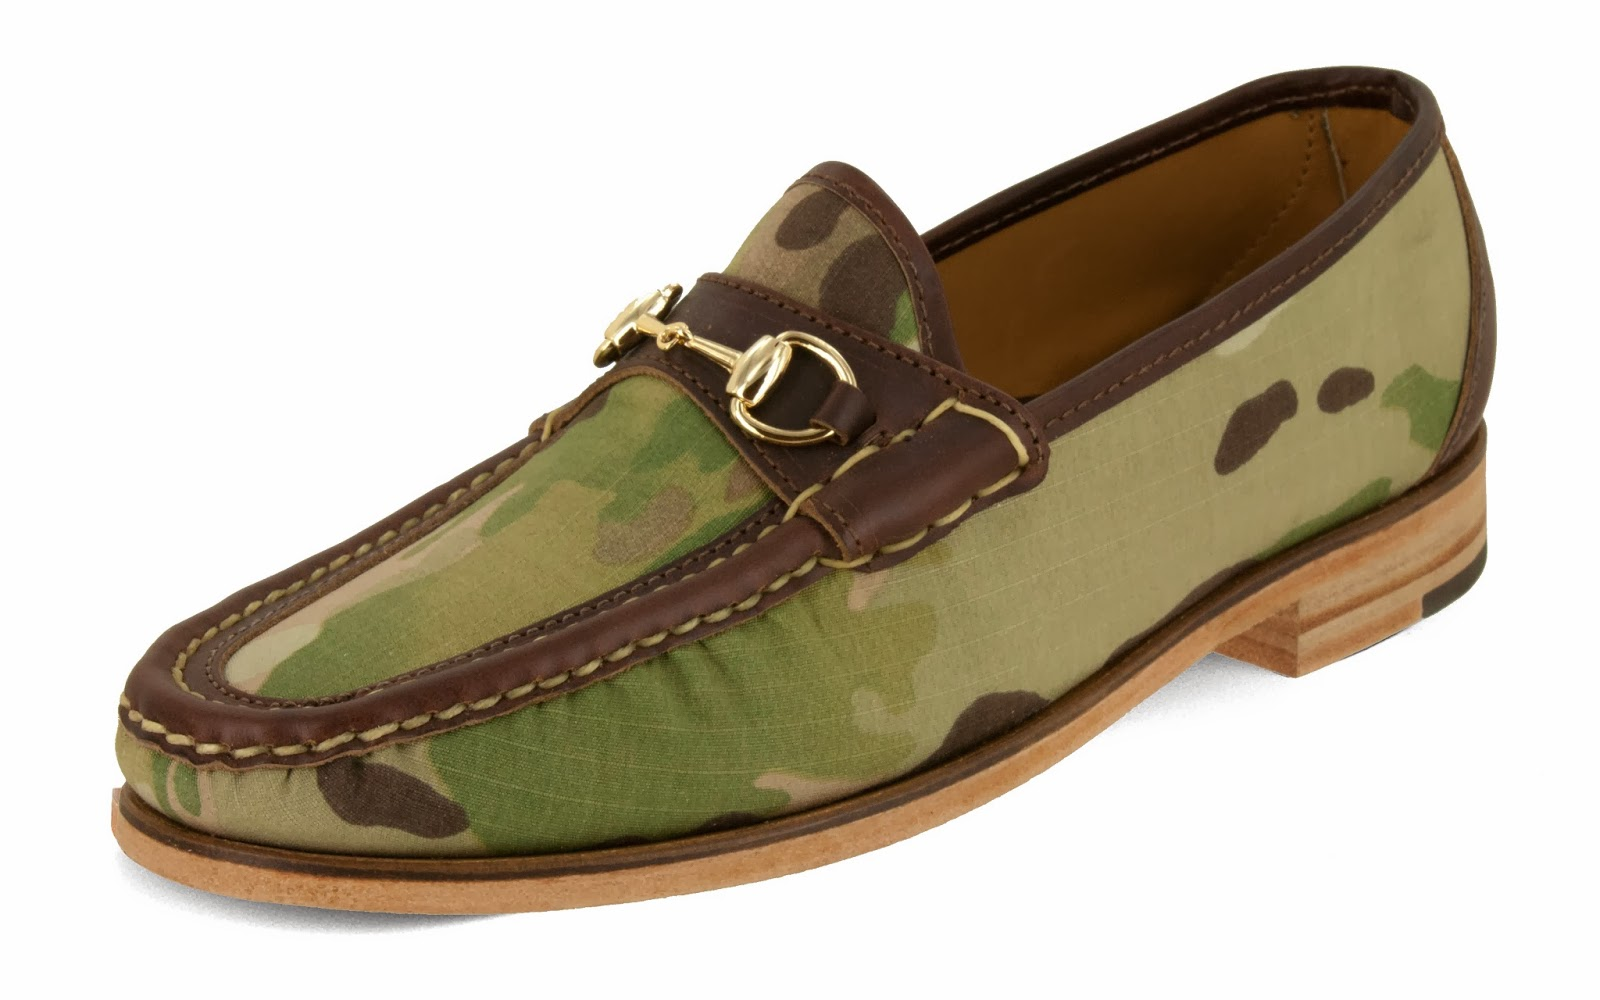 Eastland x Mark McNairy